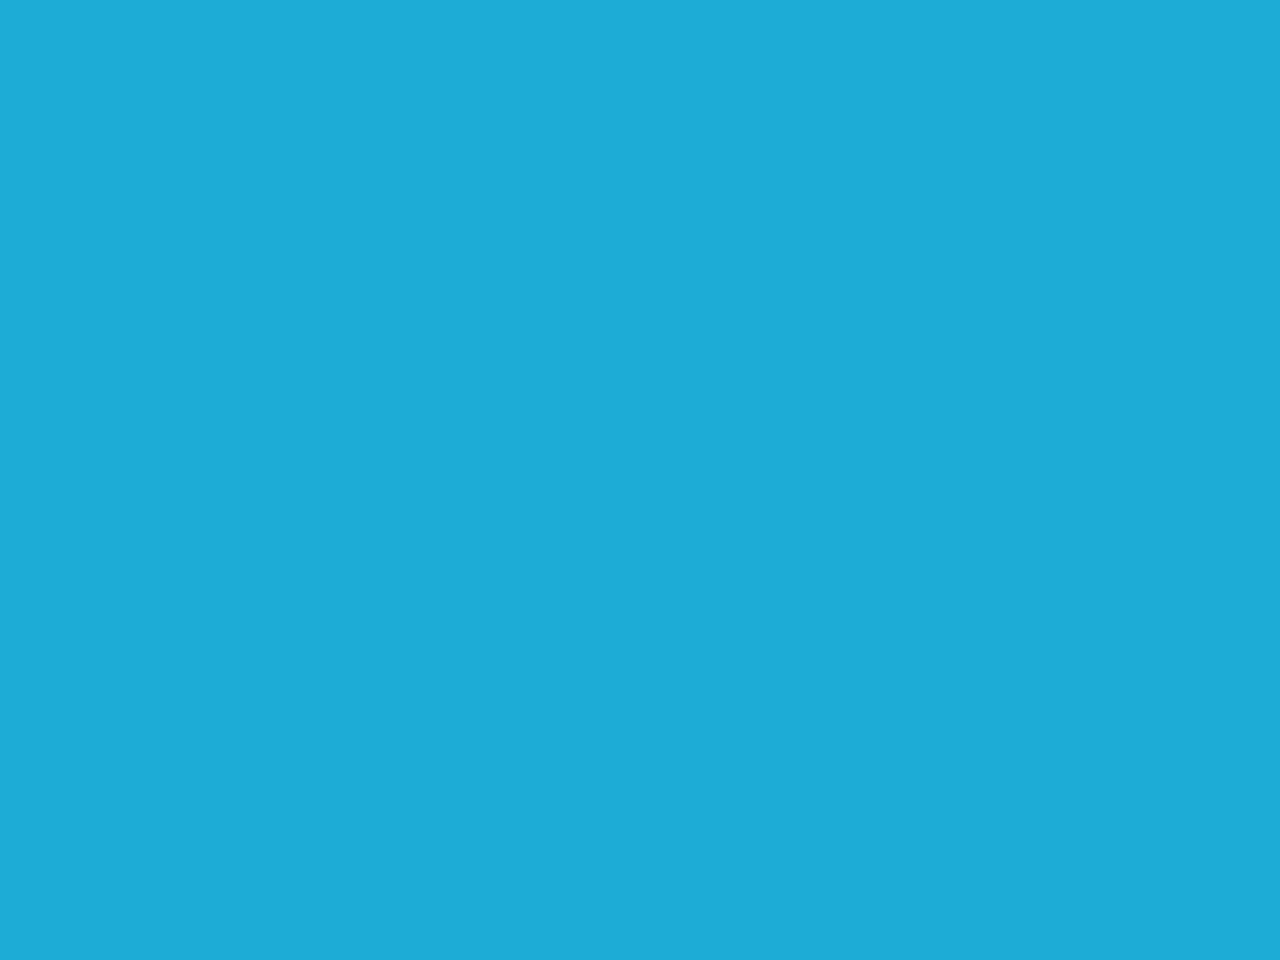 1280x960 Bright Cerulean Solid Color Background